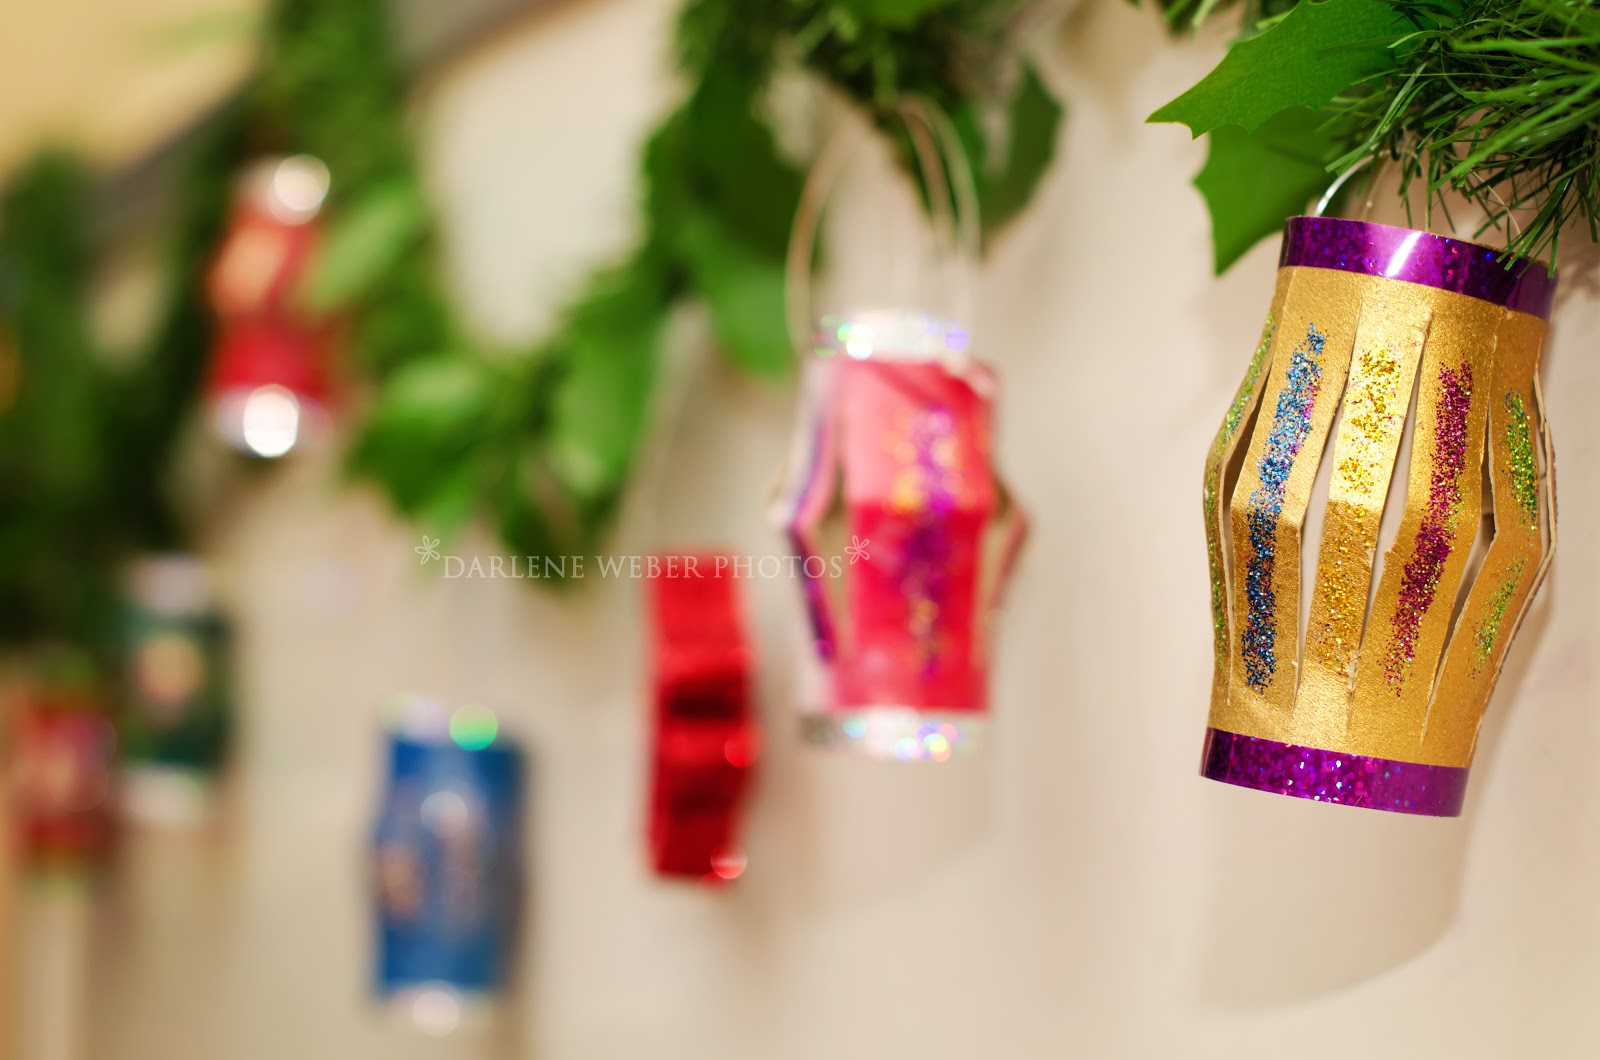 Webers in thailand toilet paper rolls ornaments you might also like jeuxipadfo Image collections